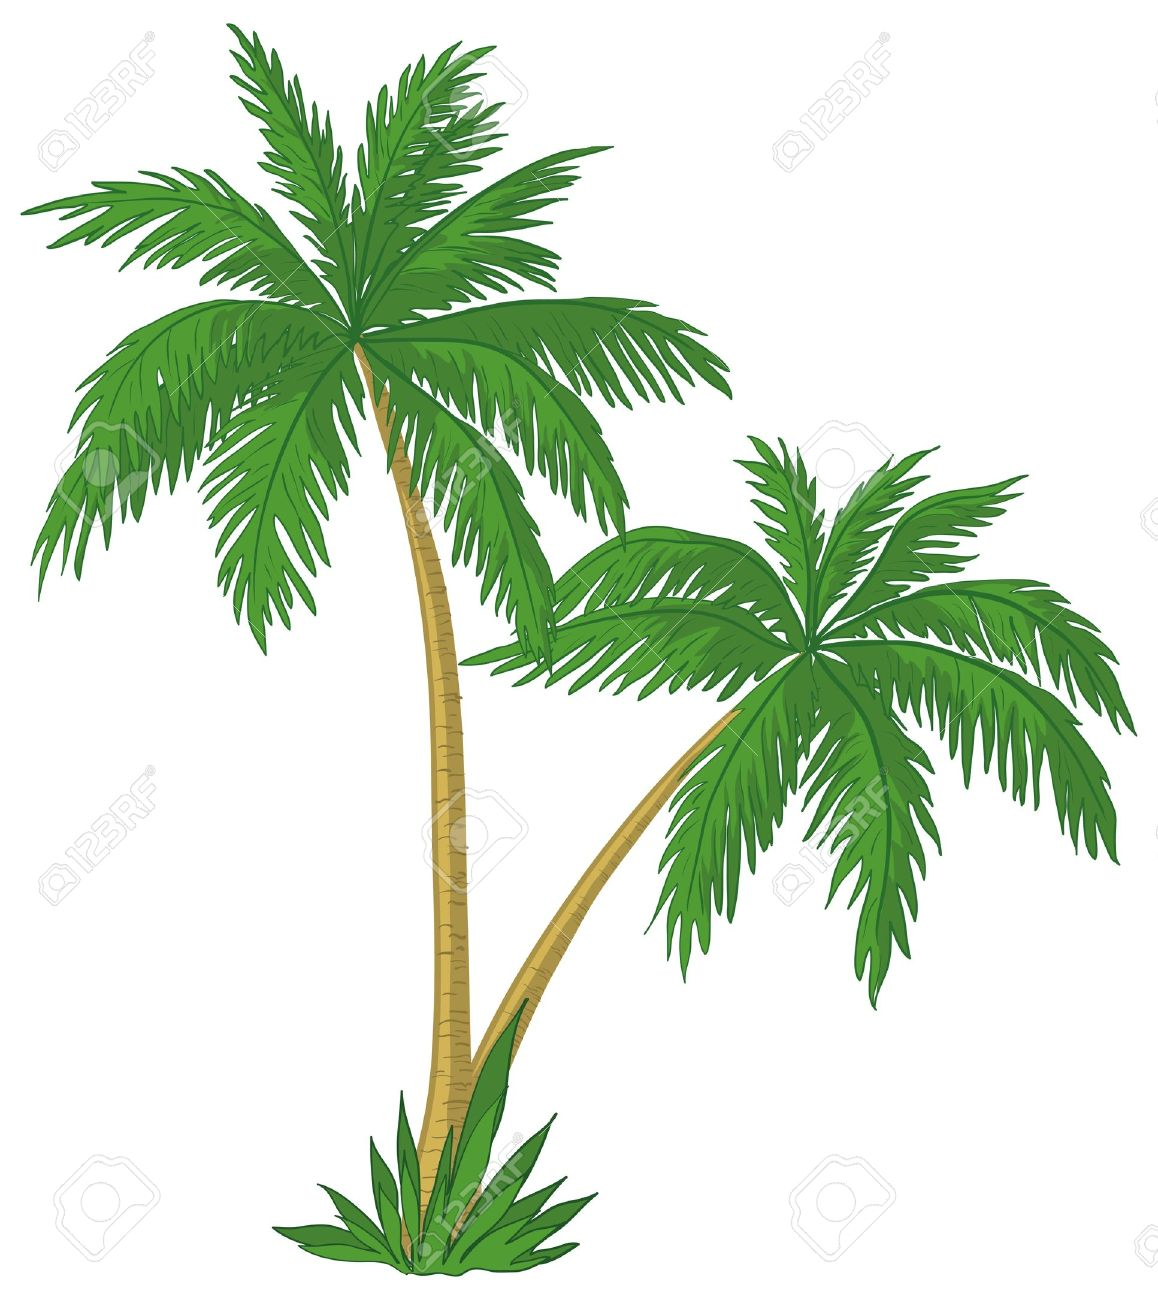 vector palm trees with green leaves on white background royalty rh 123rf com palm tree leaf free vector free vector palm tree illustration